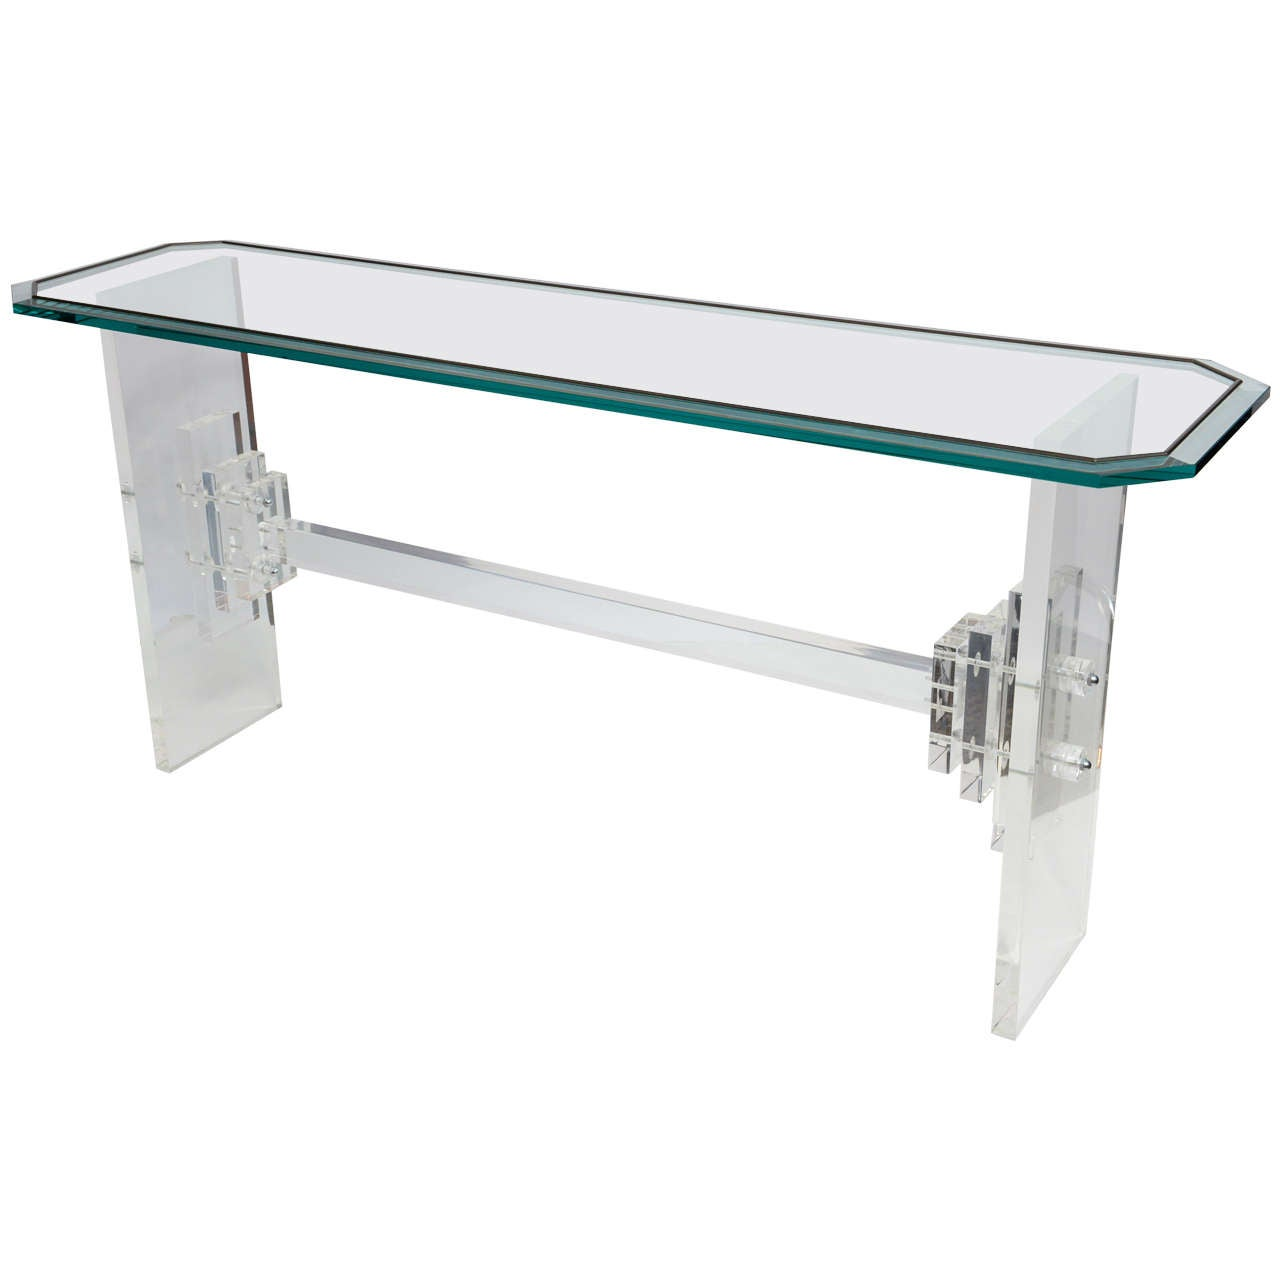 1970s Lucite Console Table